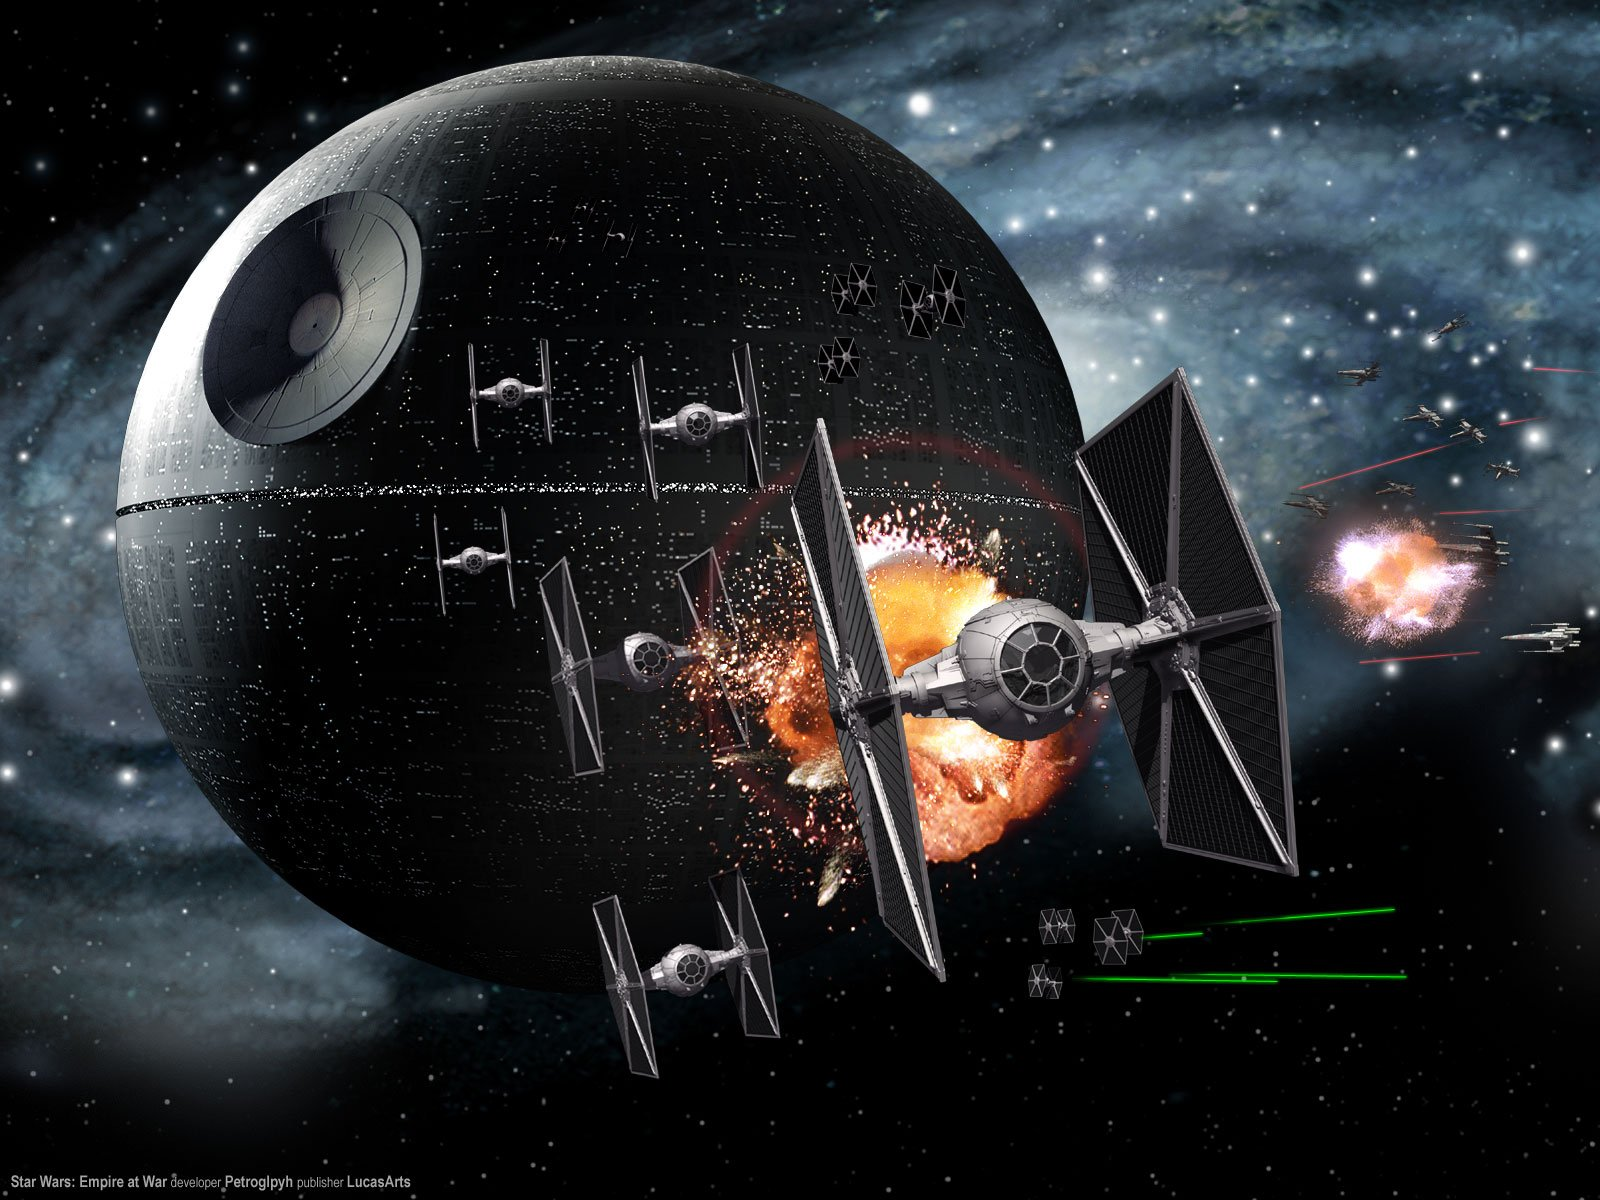 Star Wars Background Space Posted By Christopher Johnson